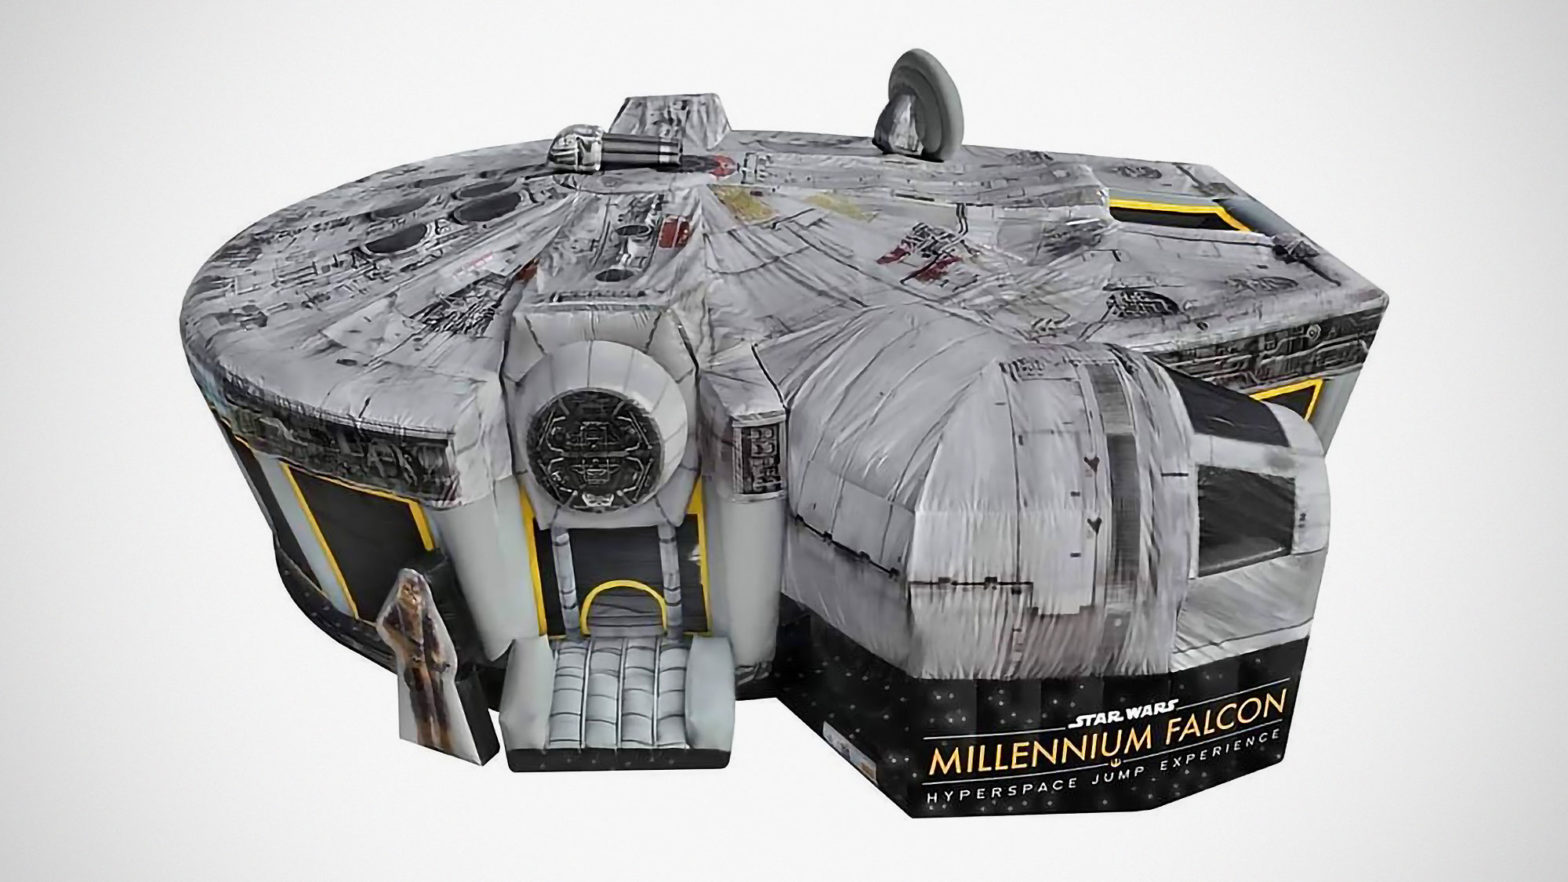 Star Wars Millennium Falcon Bounce House